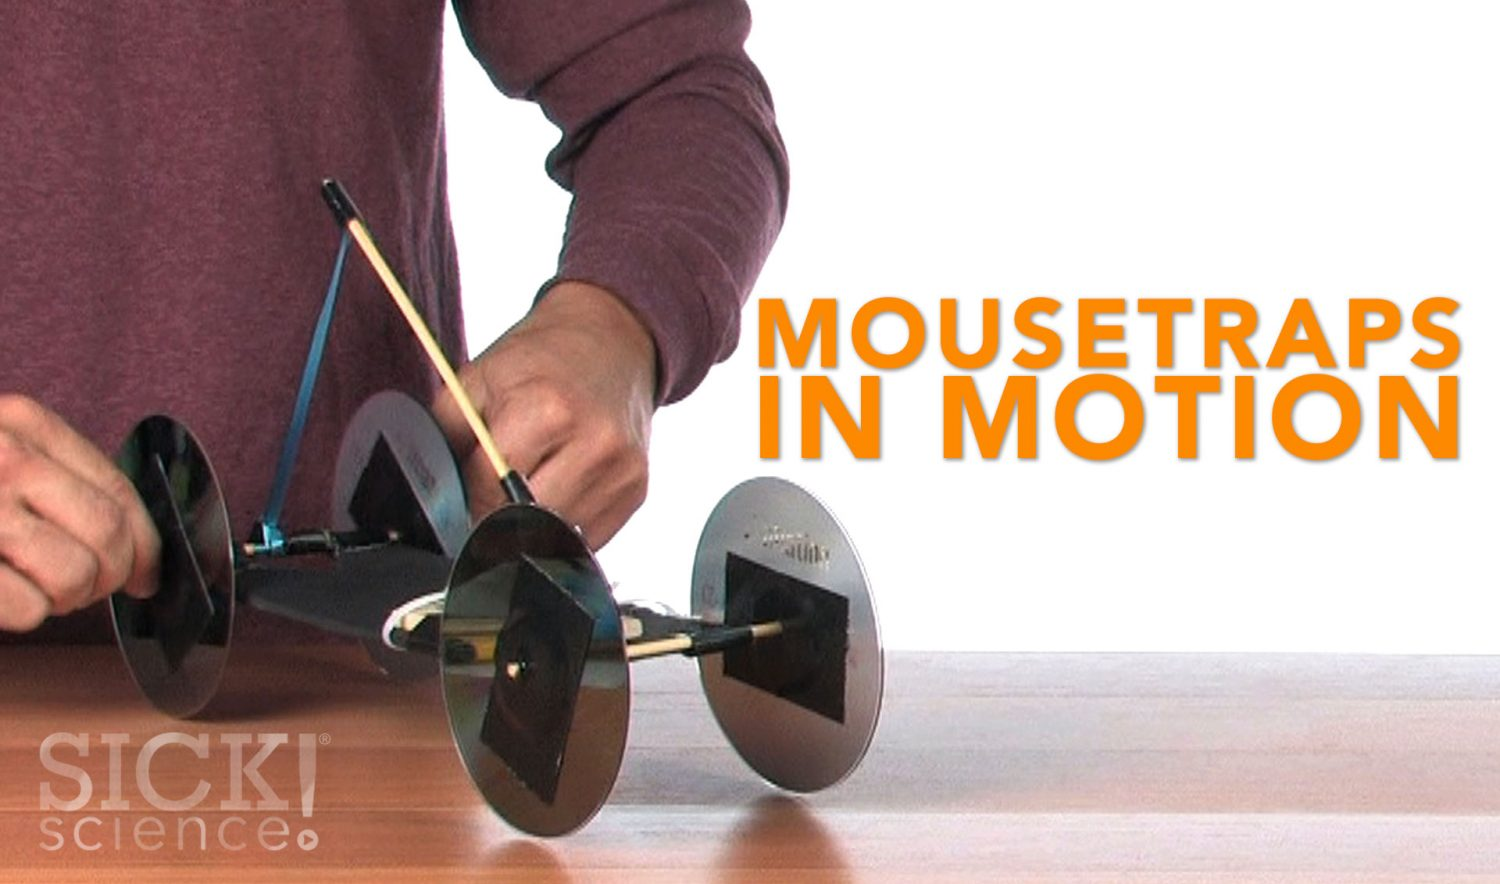 mousetraps in motion